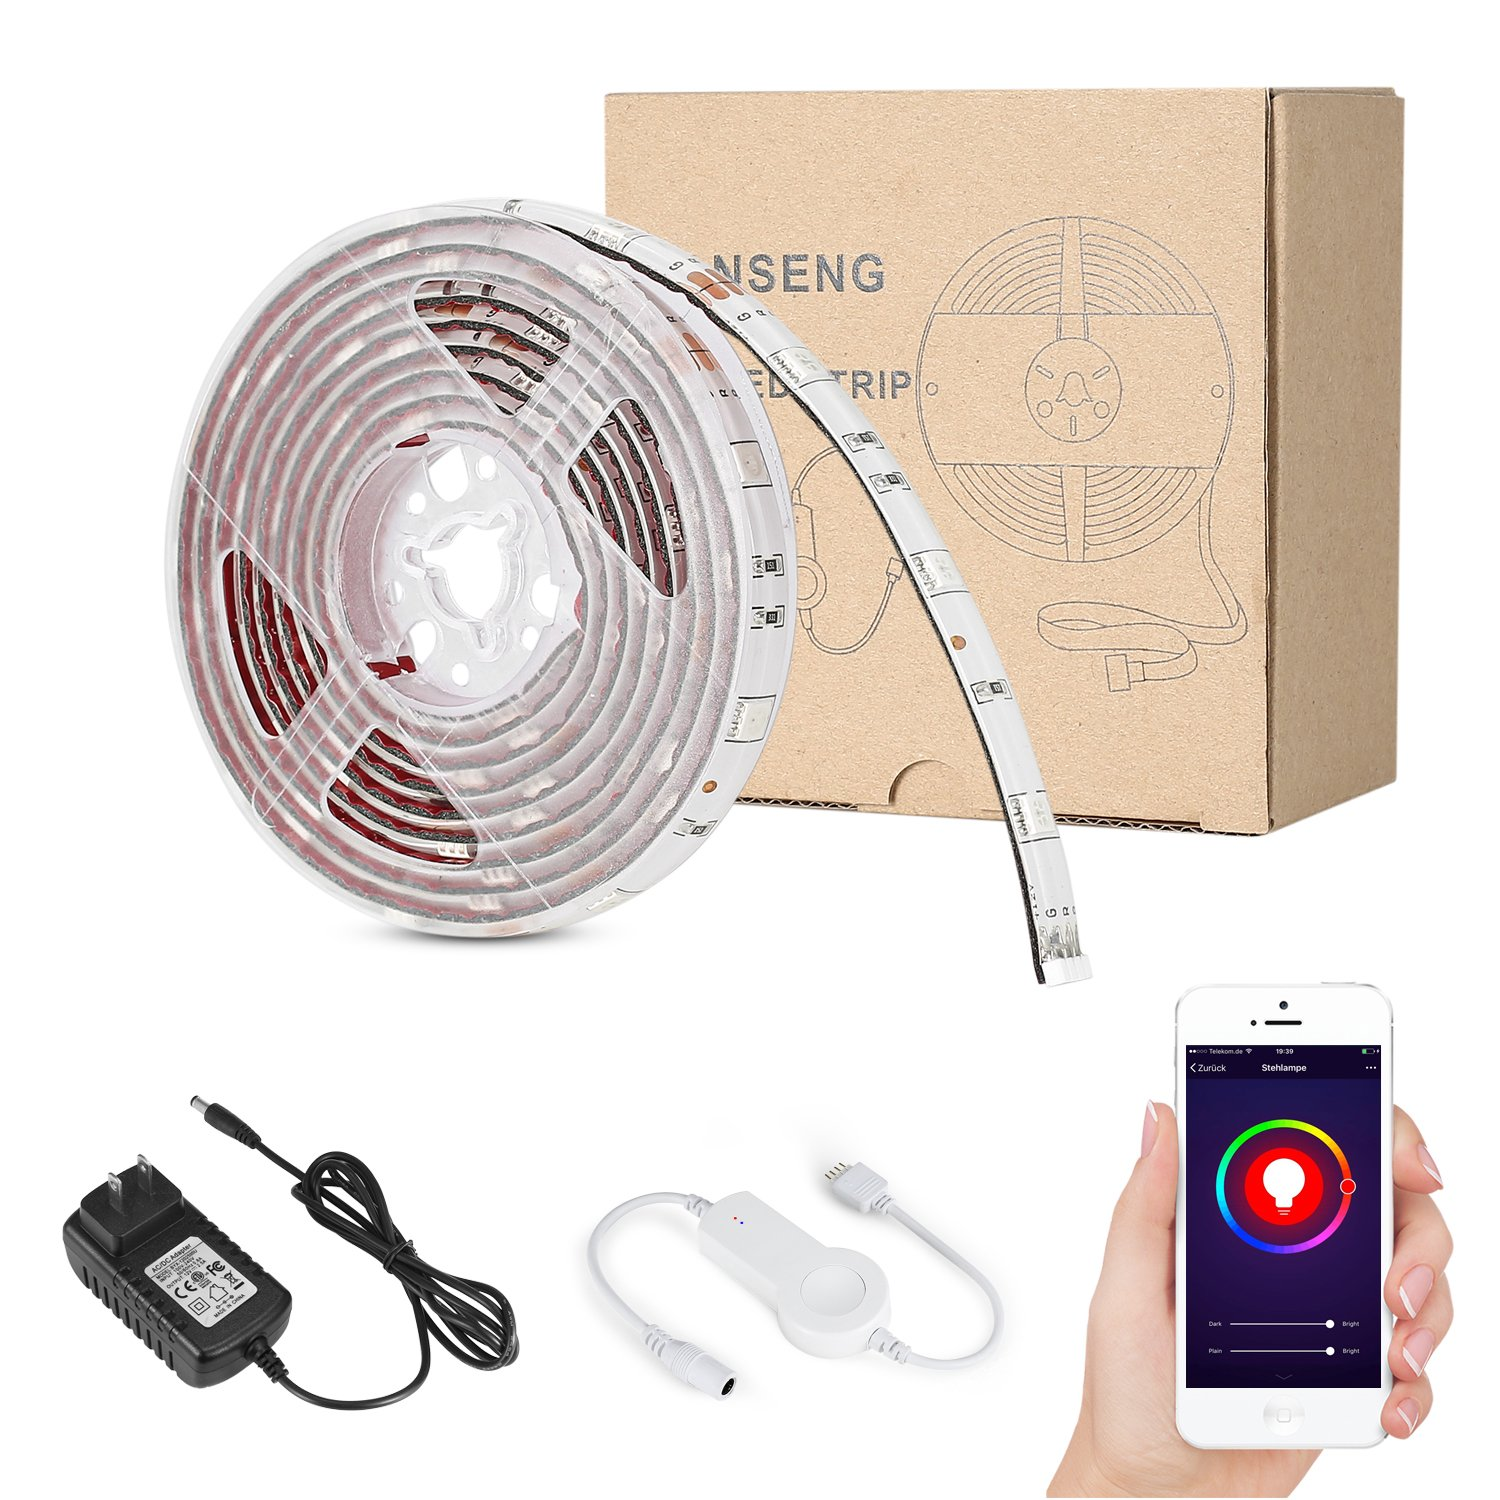 Vanseng 6ft LED Flexible Light Strip, WiFi Wireless Smart Phone Controlled 2M 60 Units SMD 5050 LEDs Waterproof IP65 LED Rope Light Strip Kit, DC 12V Power Supply, Working with Alexa by Vanseng